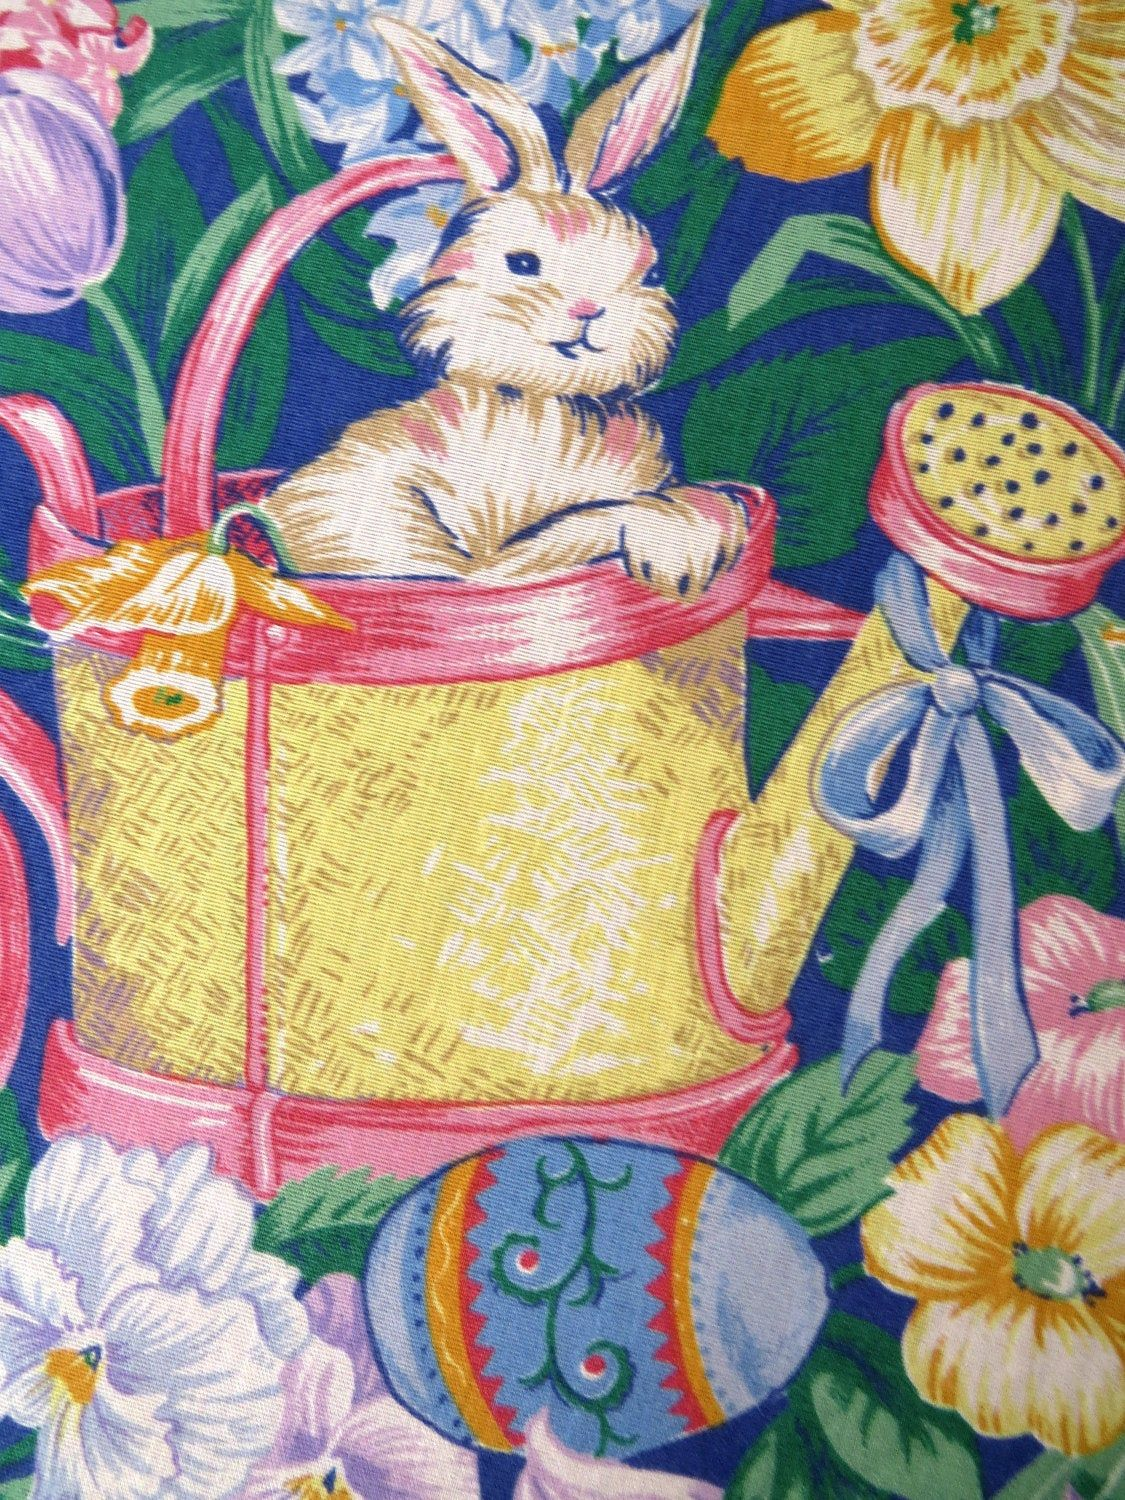 Very Large Easter Bunny Bunnies Tablecloth Rabbits Watering Cans Easter Eggs Baby Chicks Spring Flow Easter Table Linens Easter Bunny Spring Garden Flowers